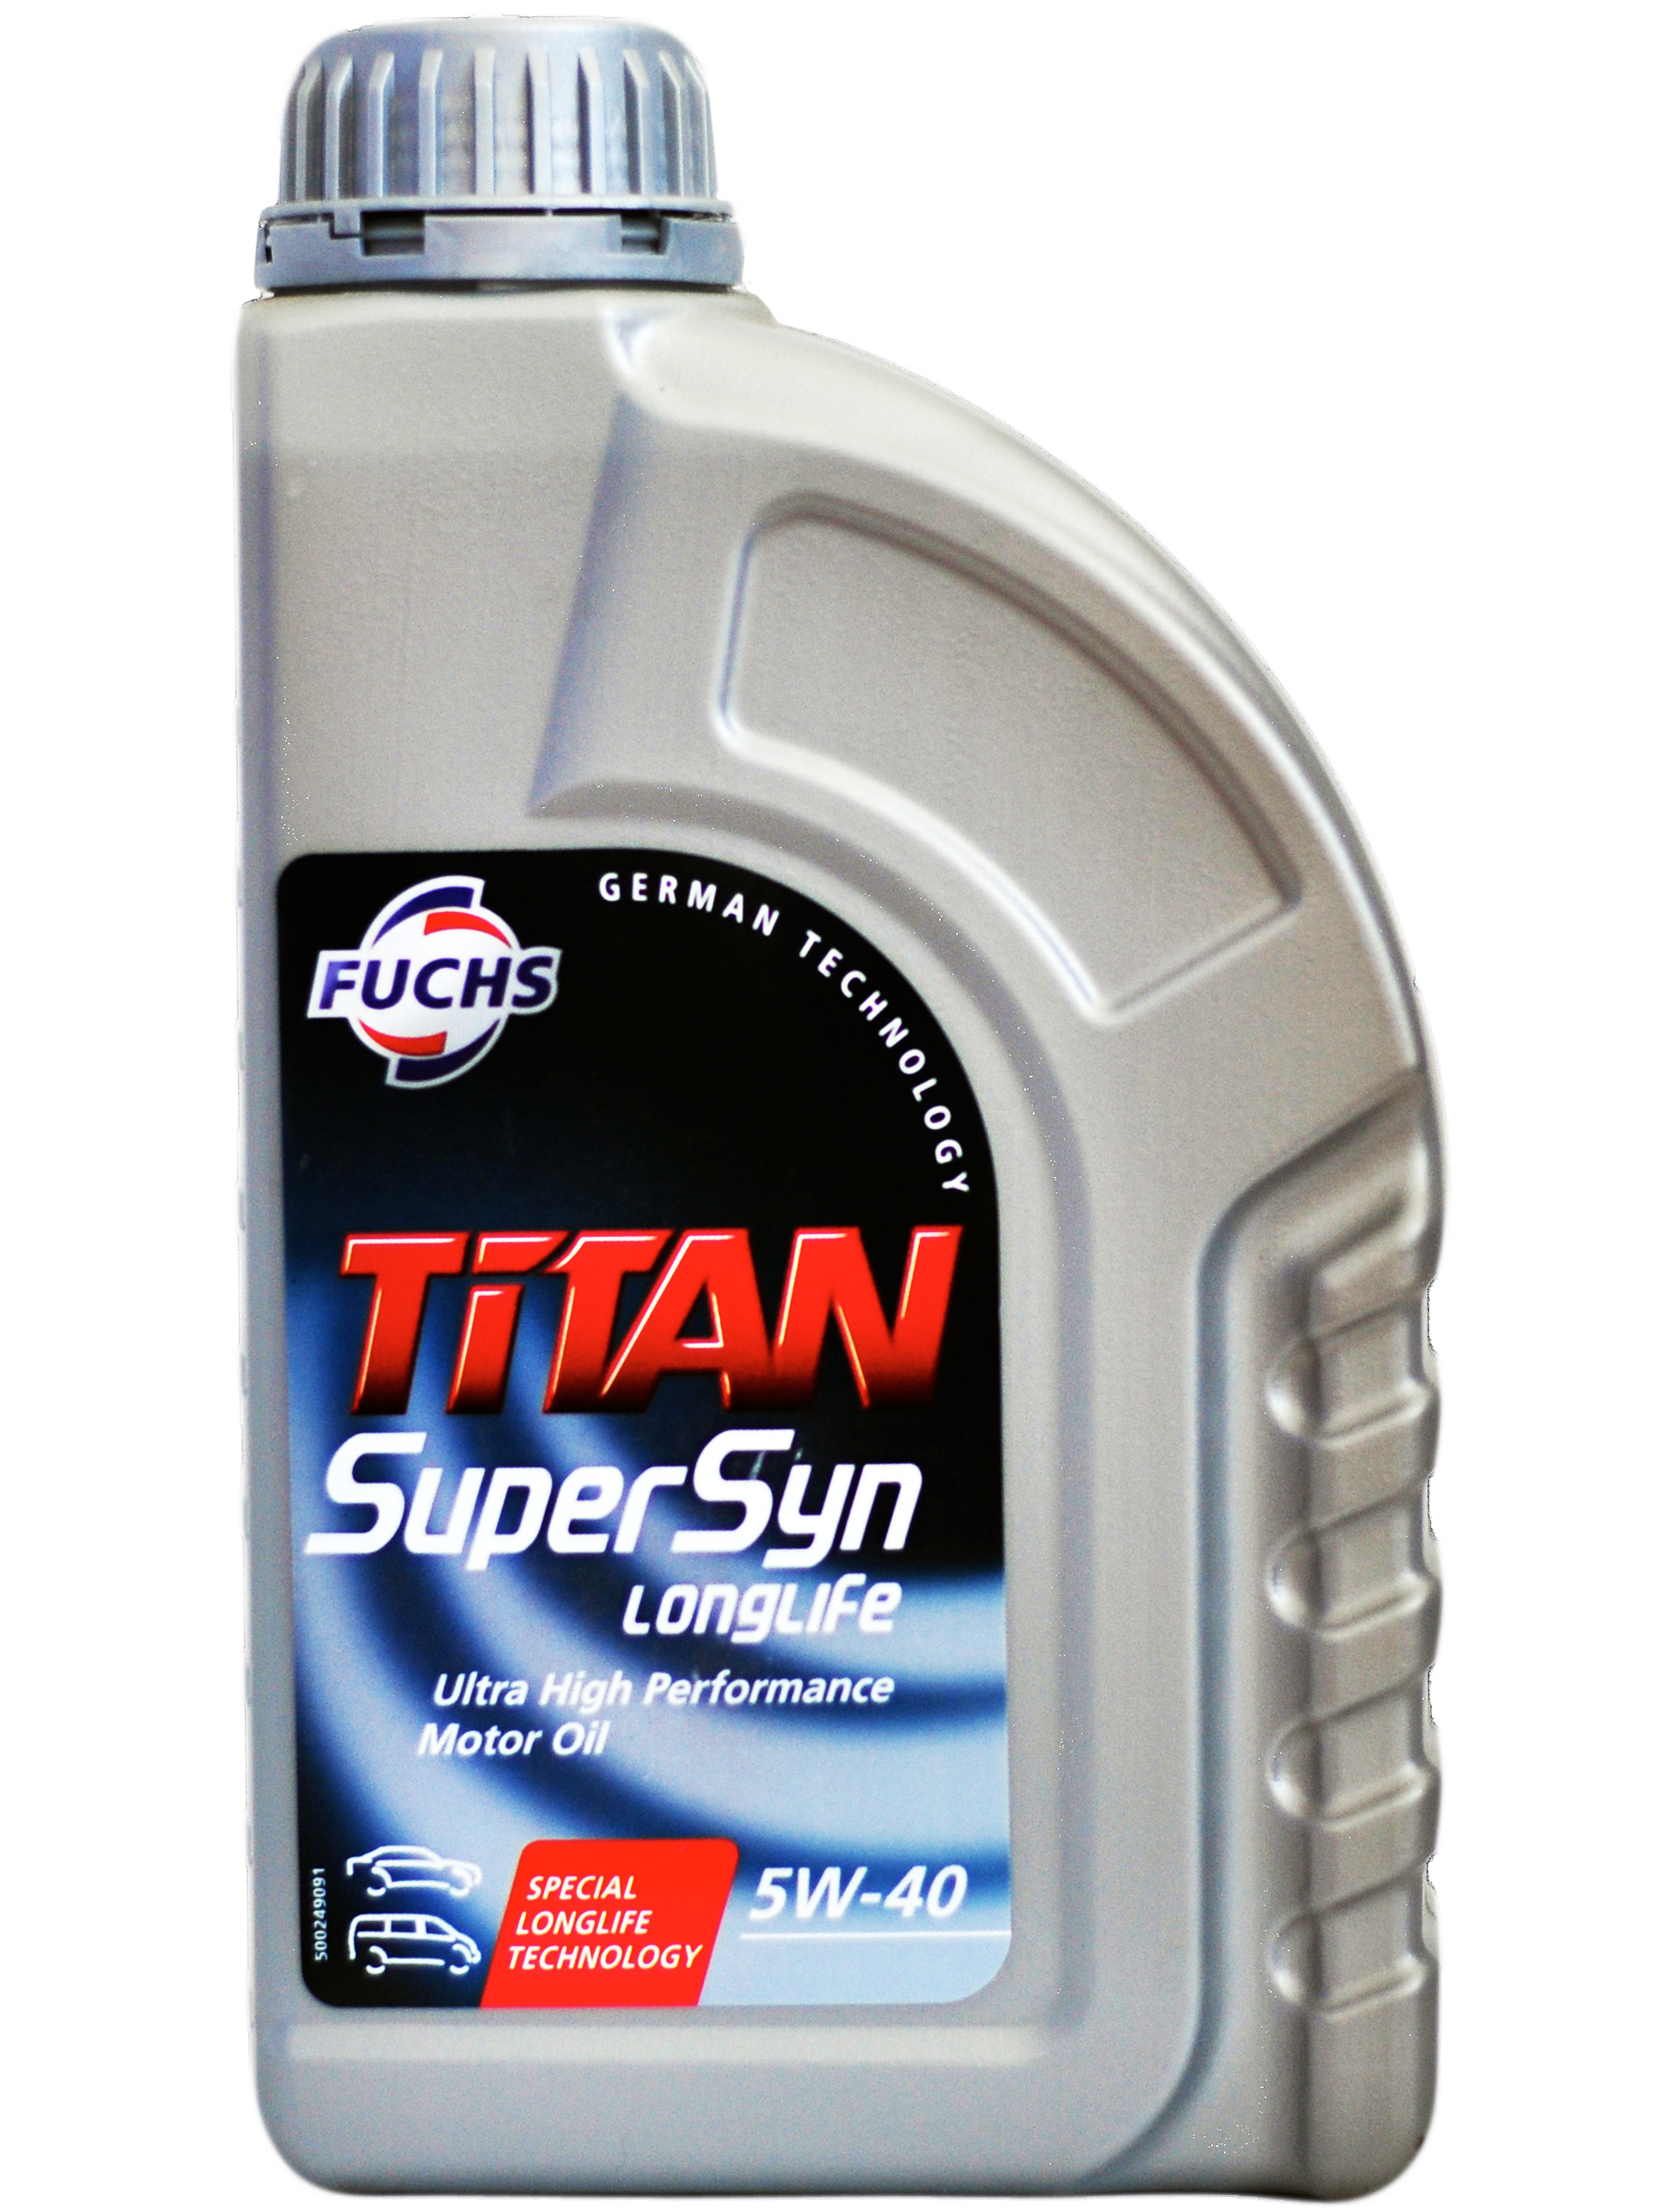 5W40 FUCHS TITAN Supersyn Longlife 1L